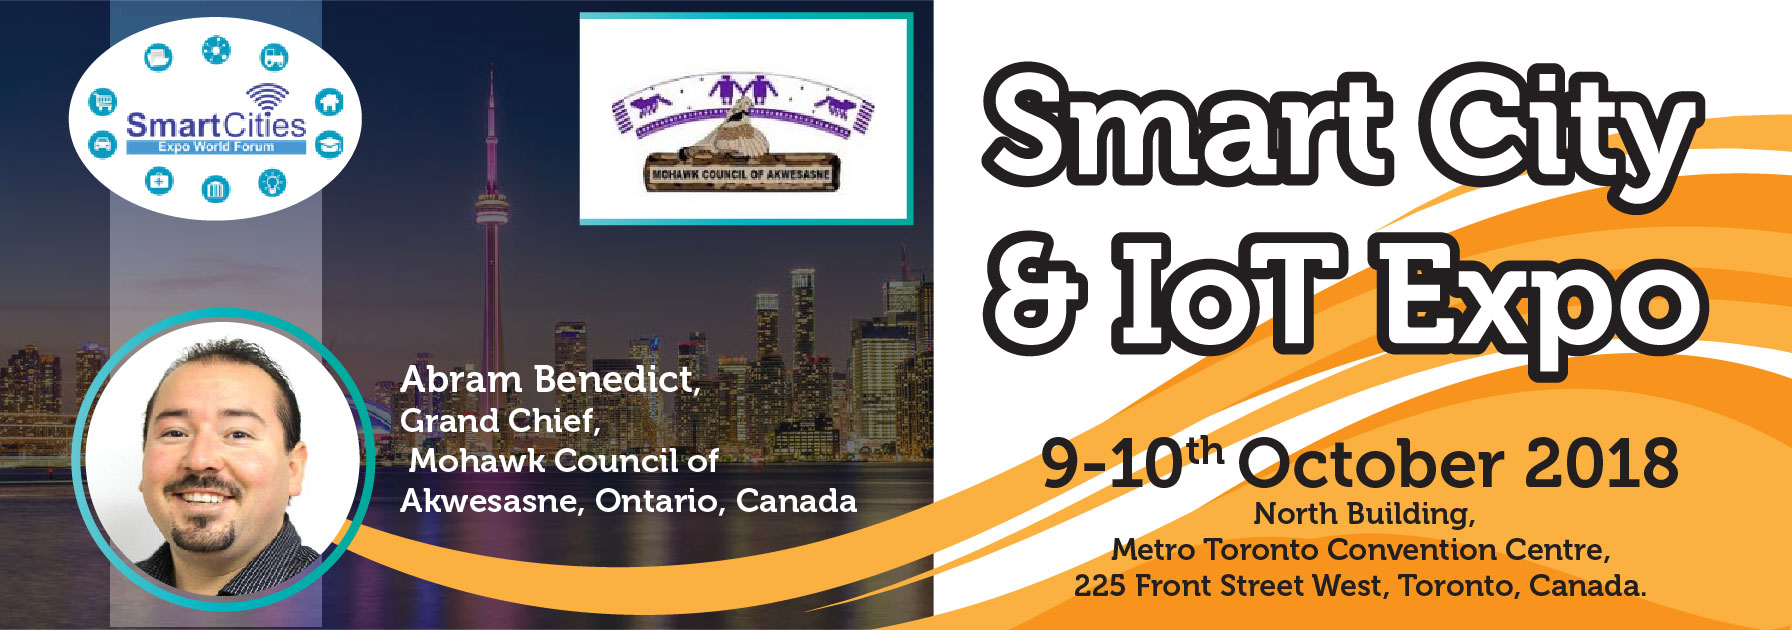 Smart Cities Expo World Forum is pleased to announce the presence of Abram Benedict, Grand Chief, Mohawk Council of Akwesasne, Ontario, Canada at Smart City & IoT Expo 9-10 Oct. 2018, Metro Toronto Convention Center, Toronto, Canada. Register Now: www.SmartCitiesExpoWorldForum.ca